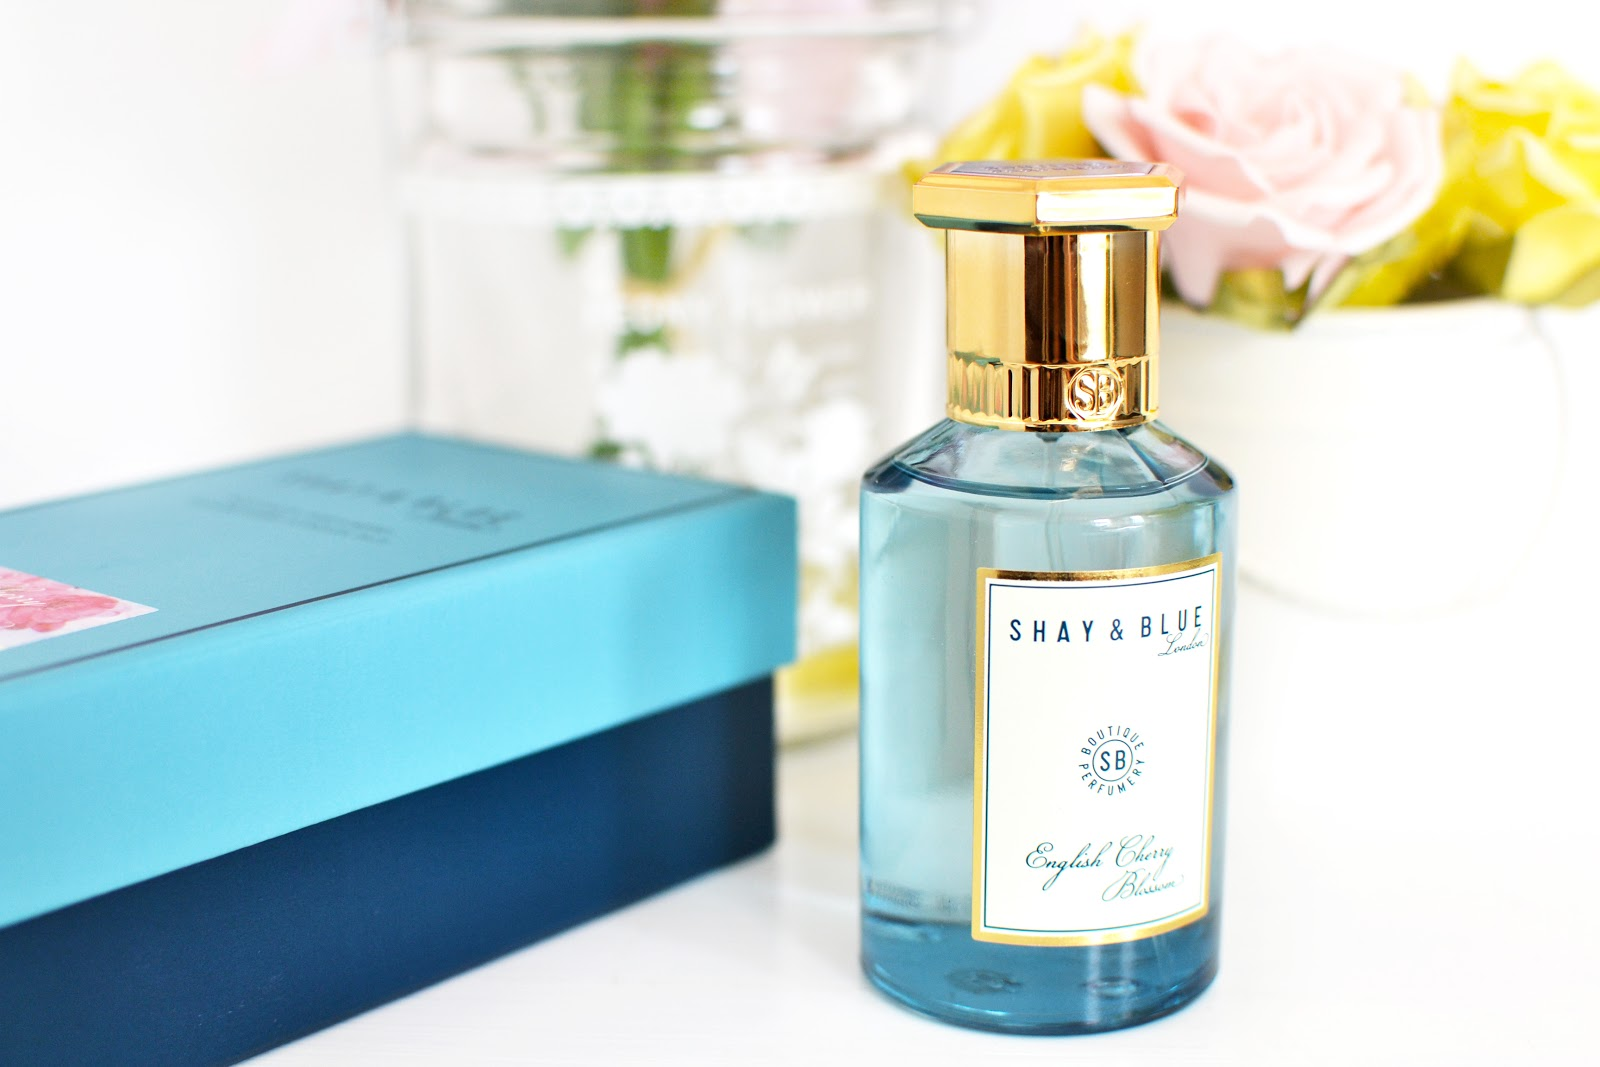 Shay & Blue English Cherry Blossom Perfume